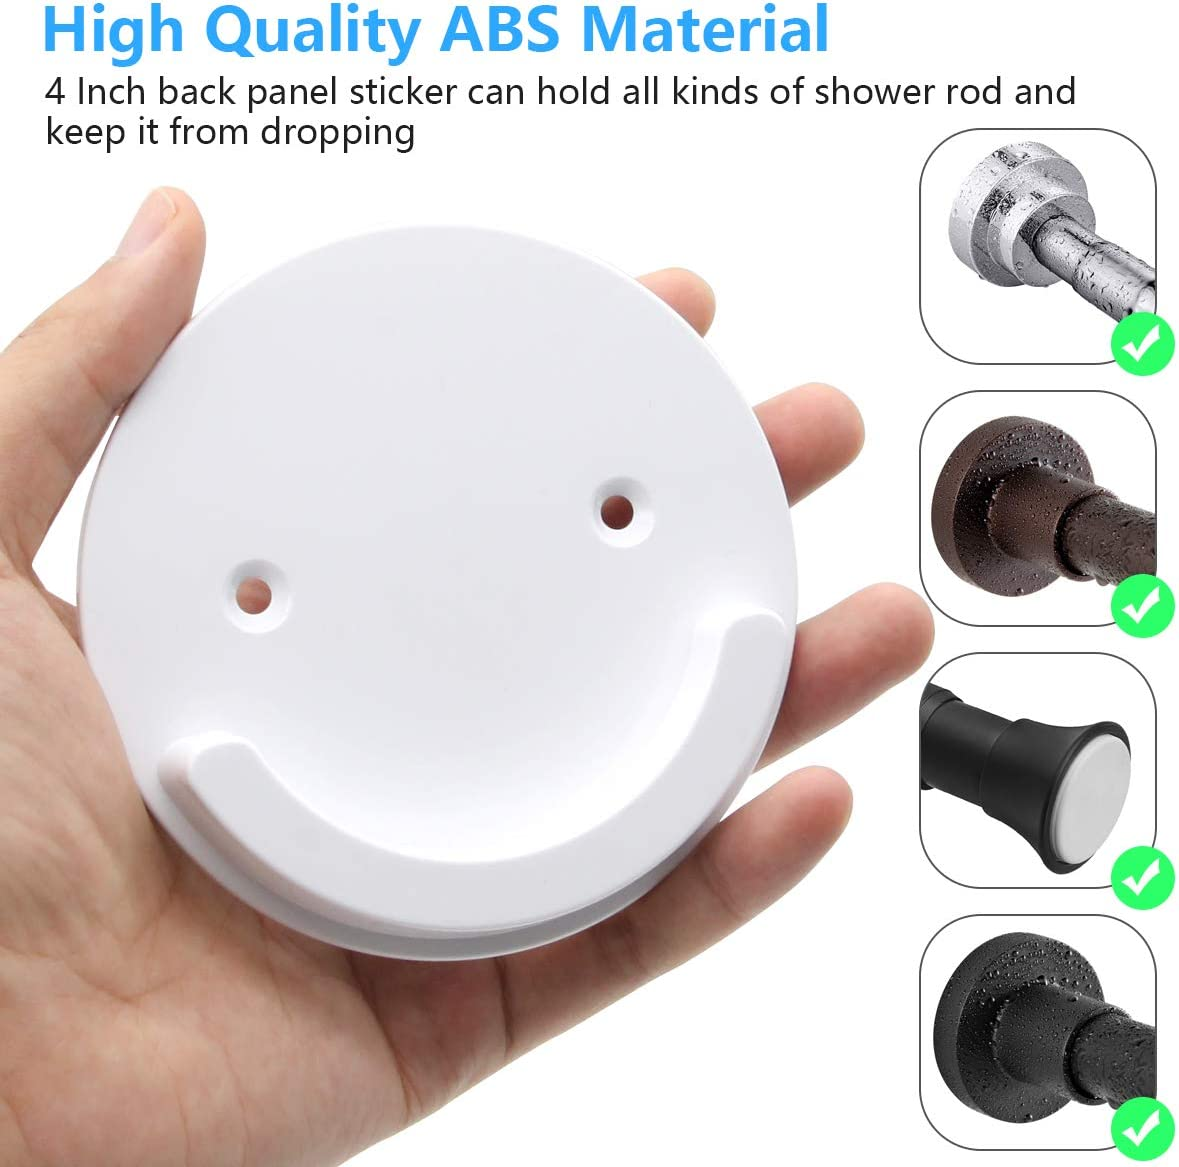 4 Inch Diameter Universal Acrylic 3M Adhesive Wall Mount Holder for Shower Curtain Rod Shower Curtain Rod Not Included FEATCH 2 Pack Shower Curtain Rod Mount Holder